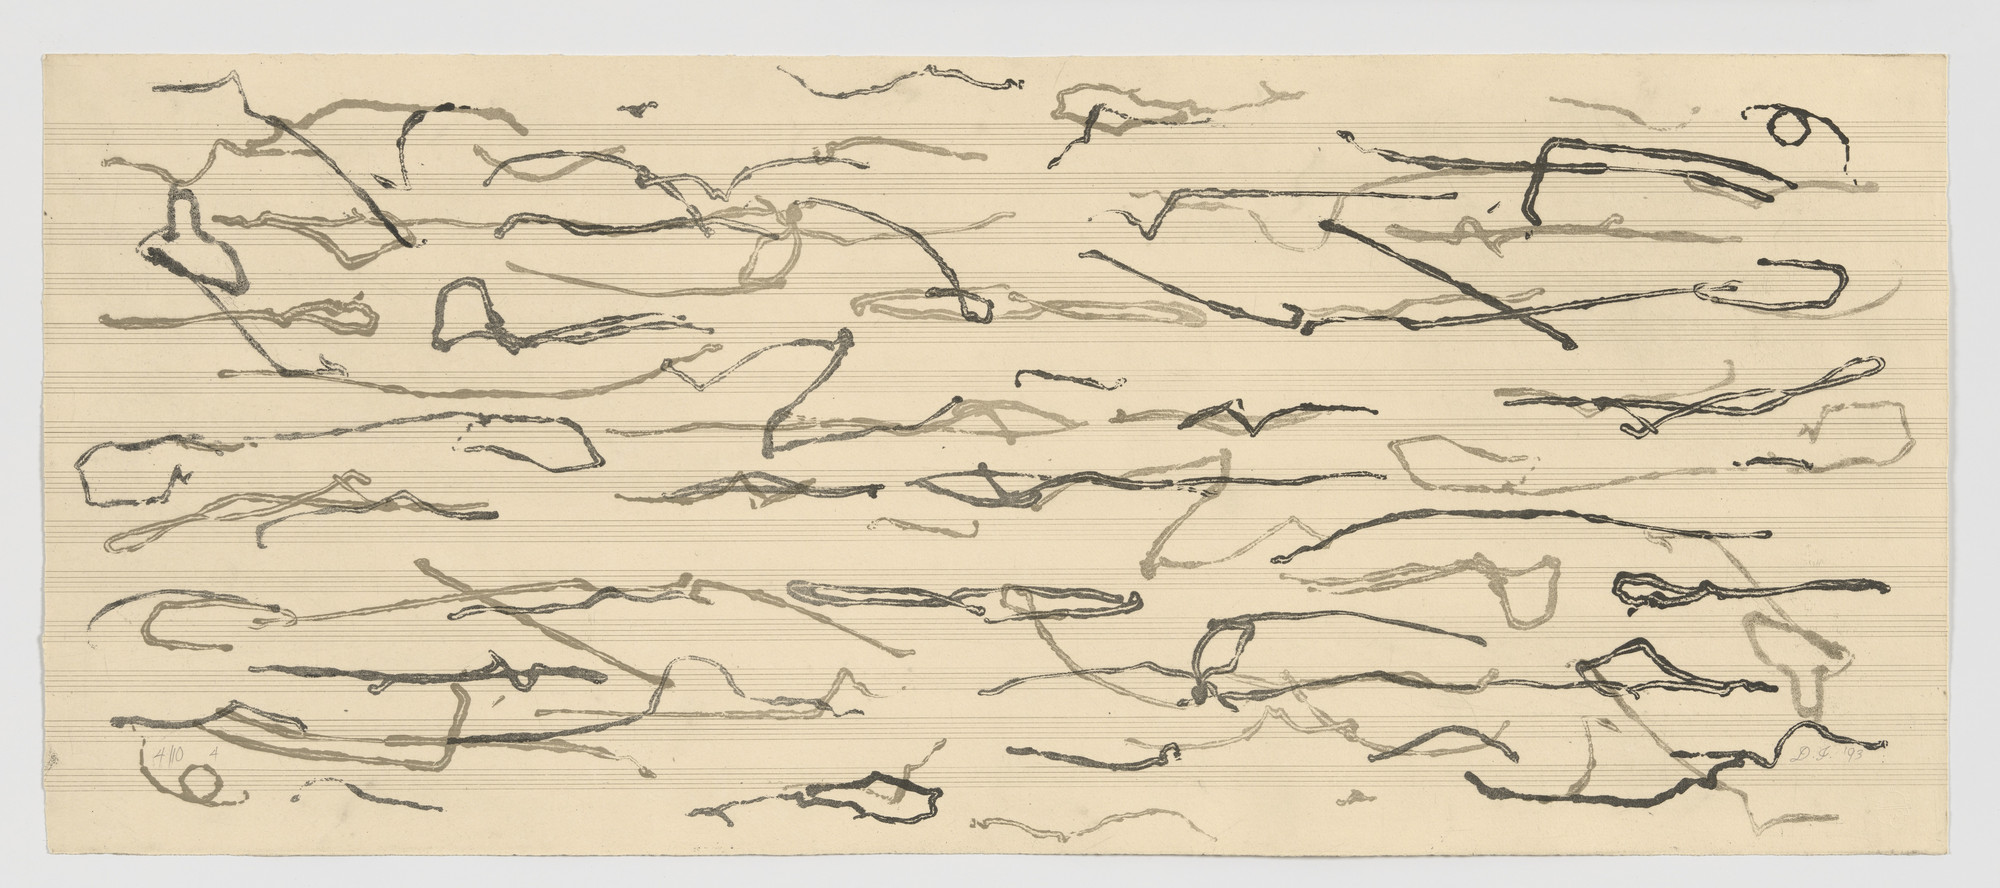 David Ireland. Untitled from A variation on 79, side to side passes on a dumball, dedicated to the memory of John Cage 1912-1992. 1993